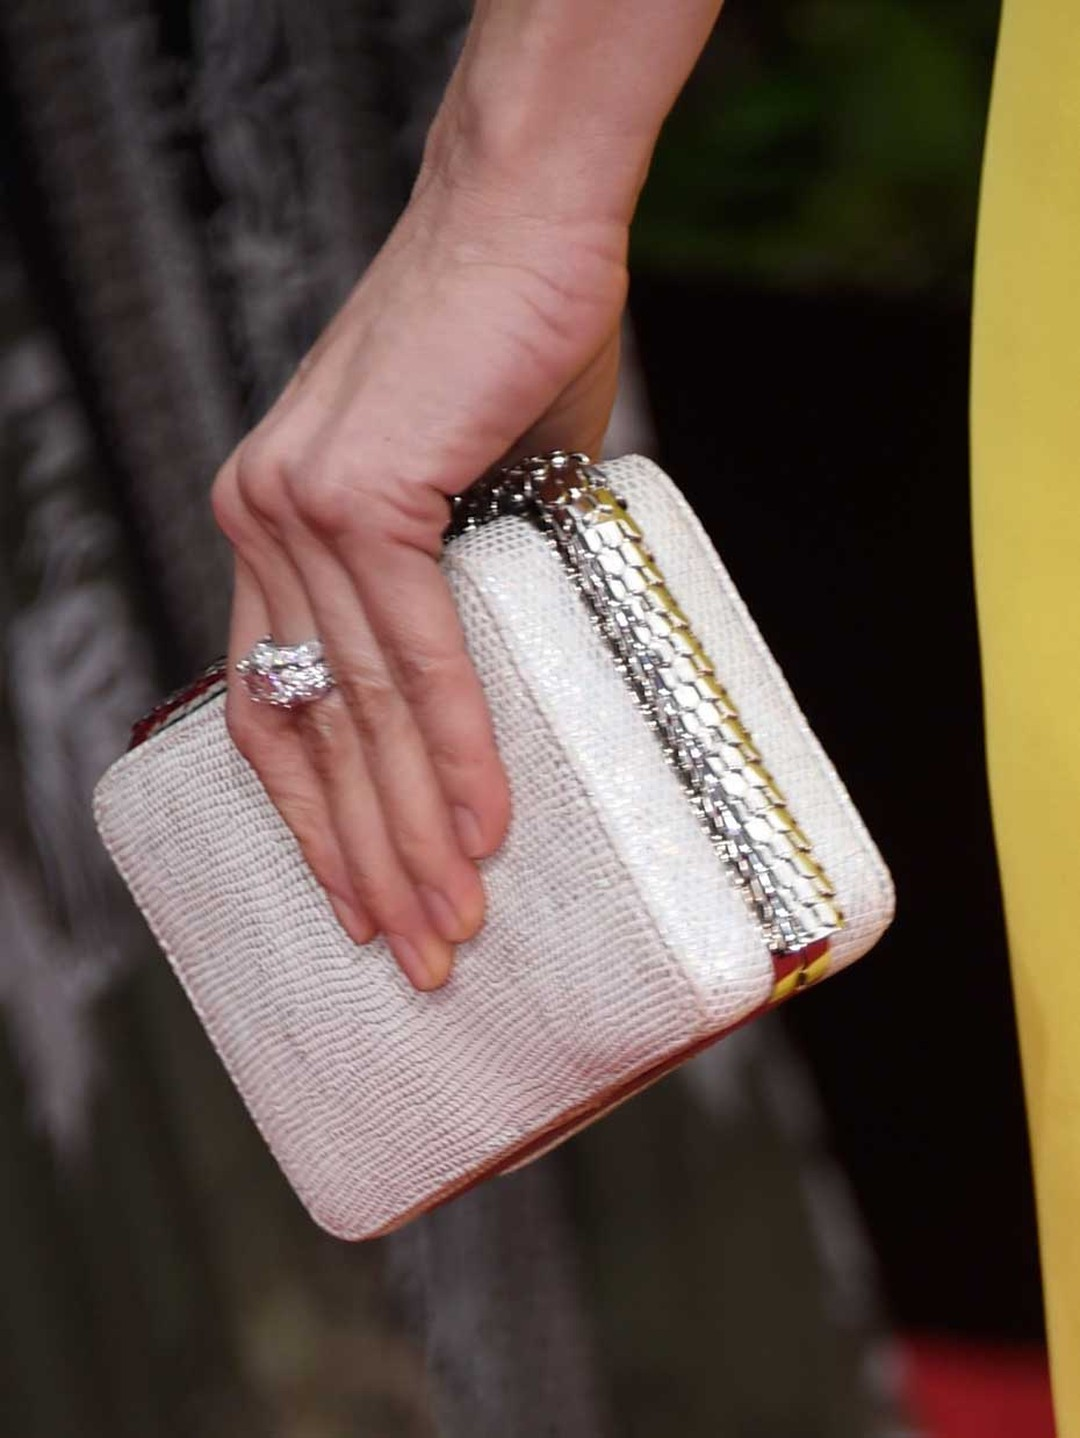 A close-up of the Bulgari Serpenti cocktail clutch and ring worn by Naomi Watts at the 2015 Golden Globes.